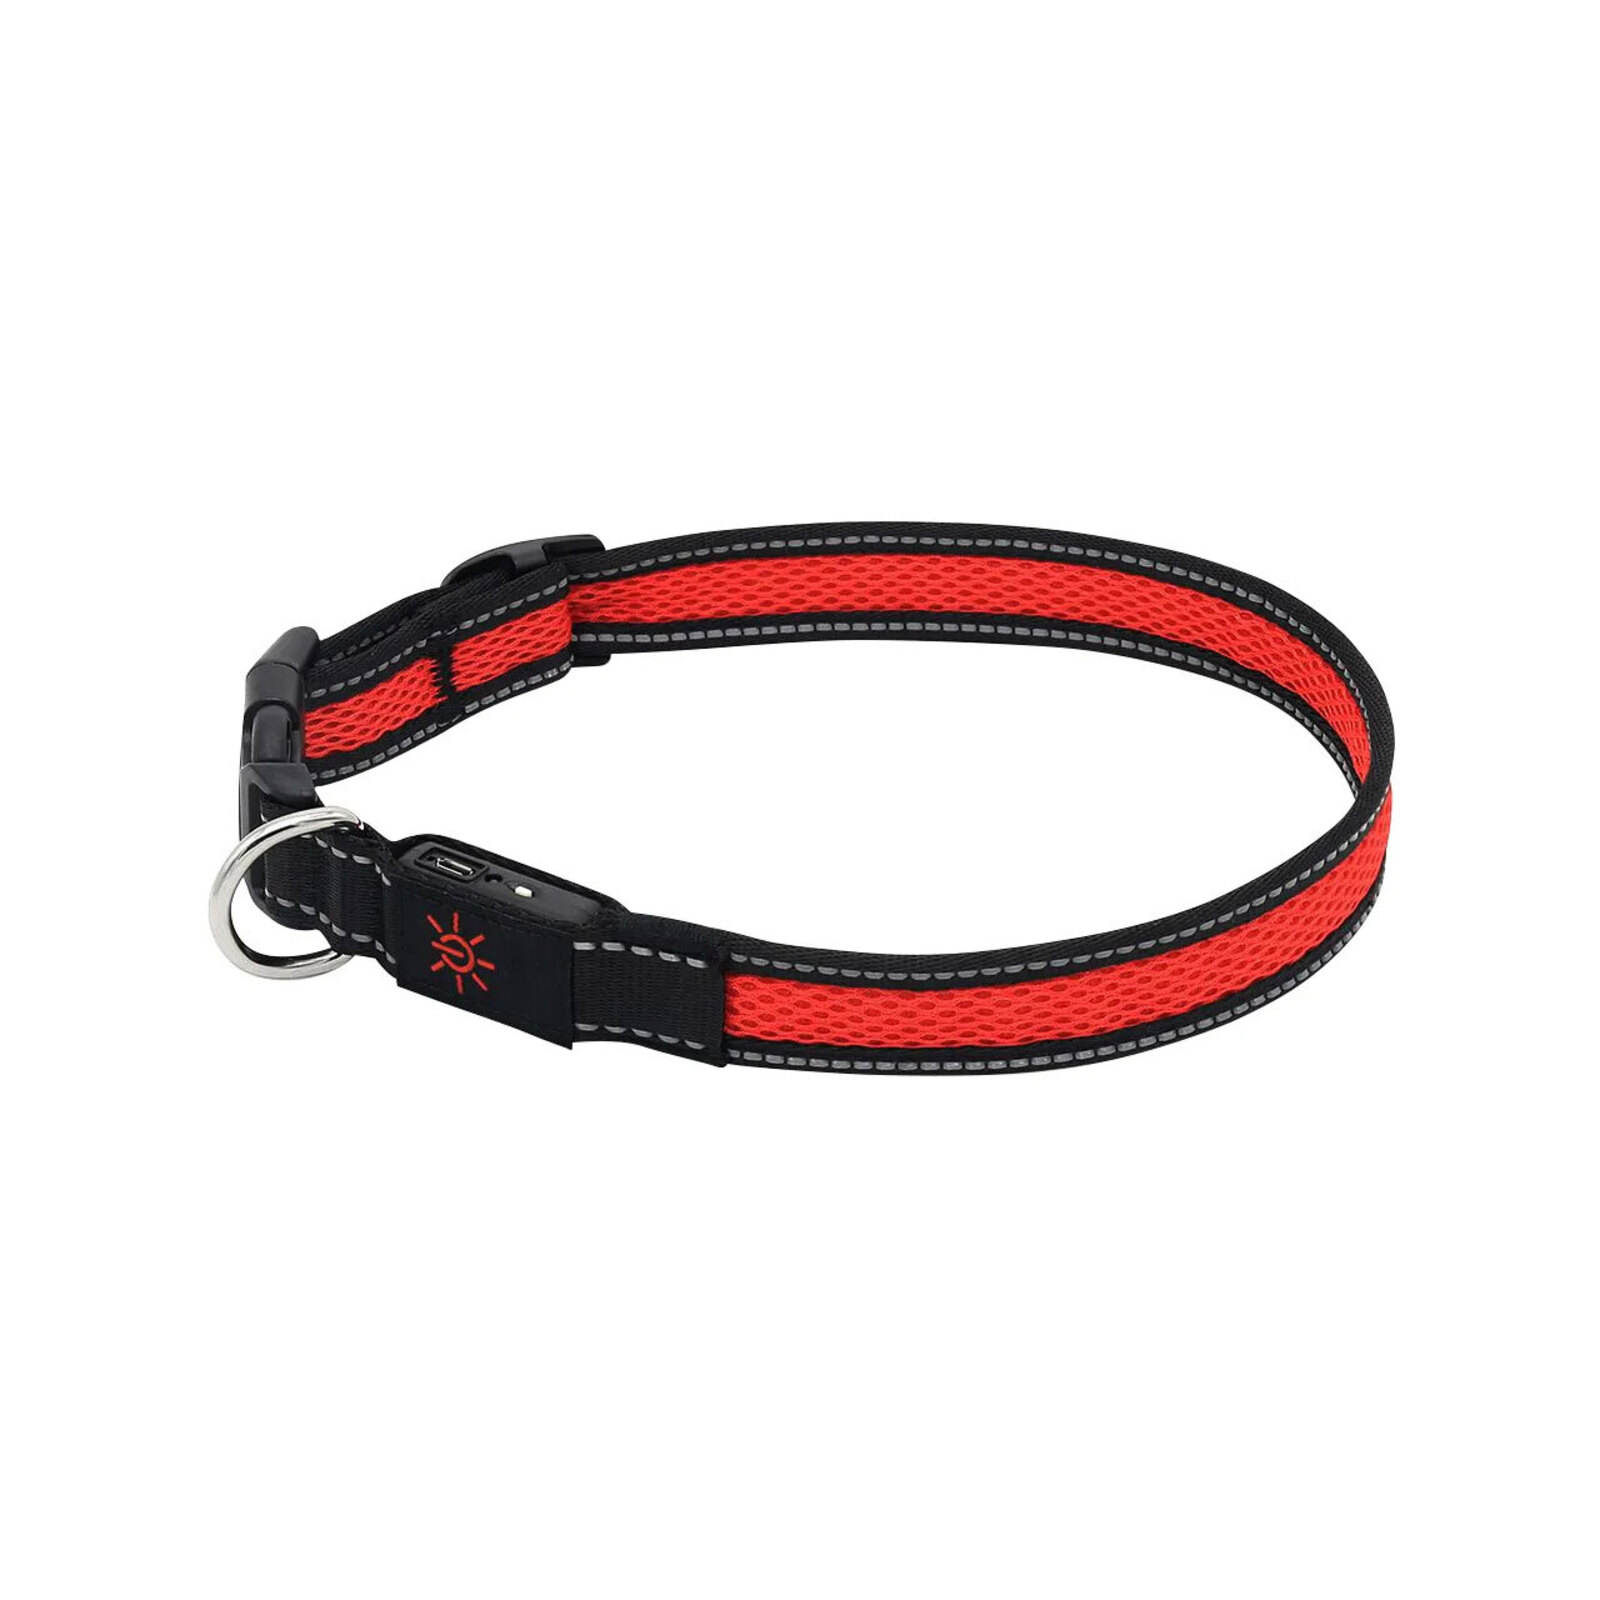 Mighty 28-46cm LED Adjustable USB Dog Pet Collar Reflective Light-Up Small Red